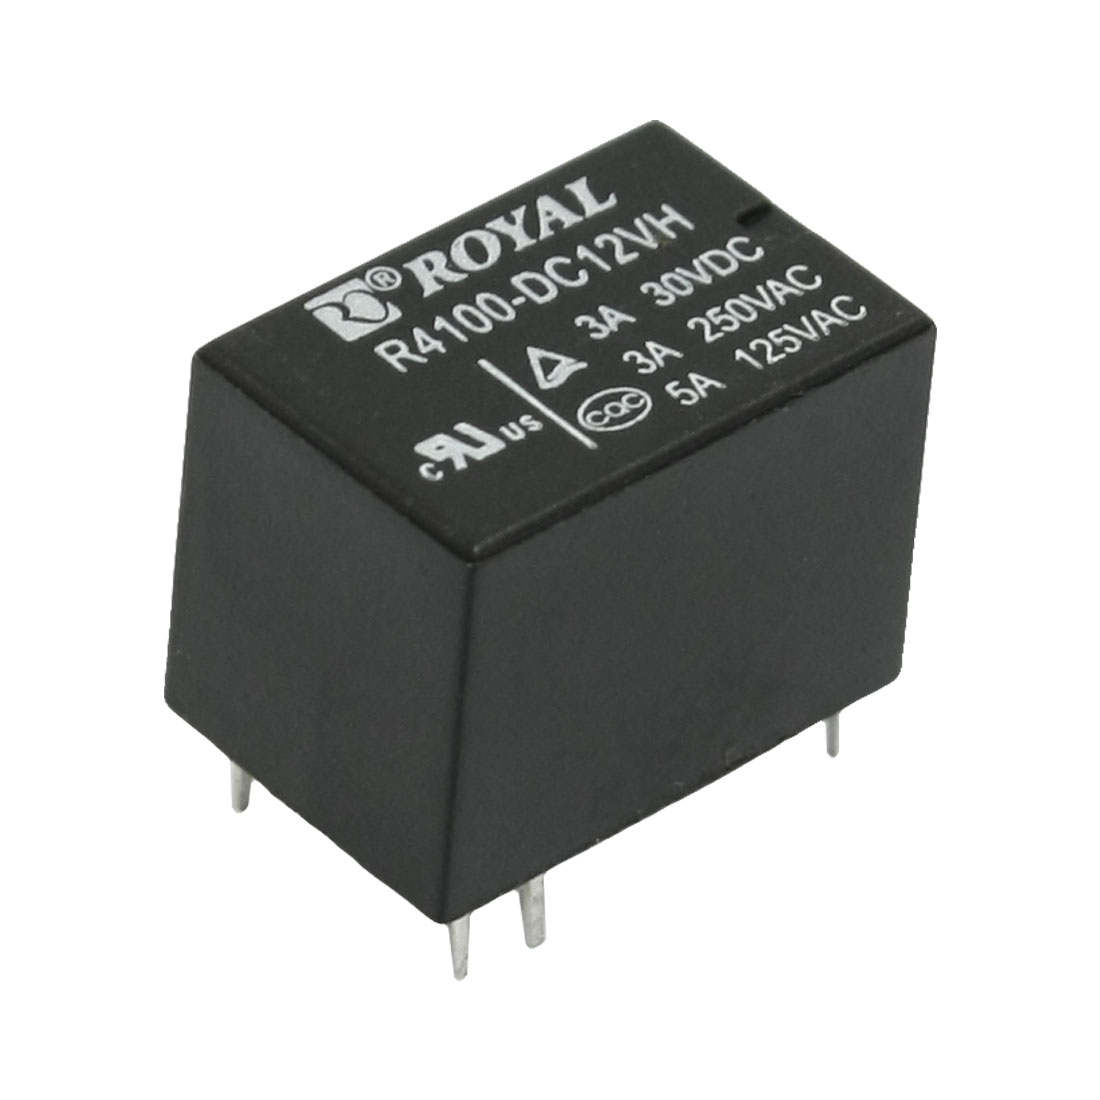 AC 250V/3A AC 125V/5A 6 Pins General Purpose Electromagnetic Relay DC 12V Coil